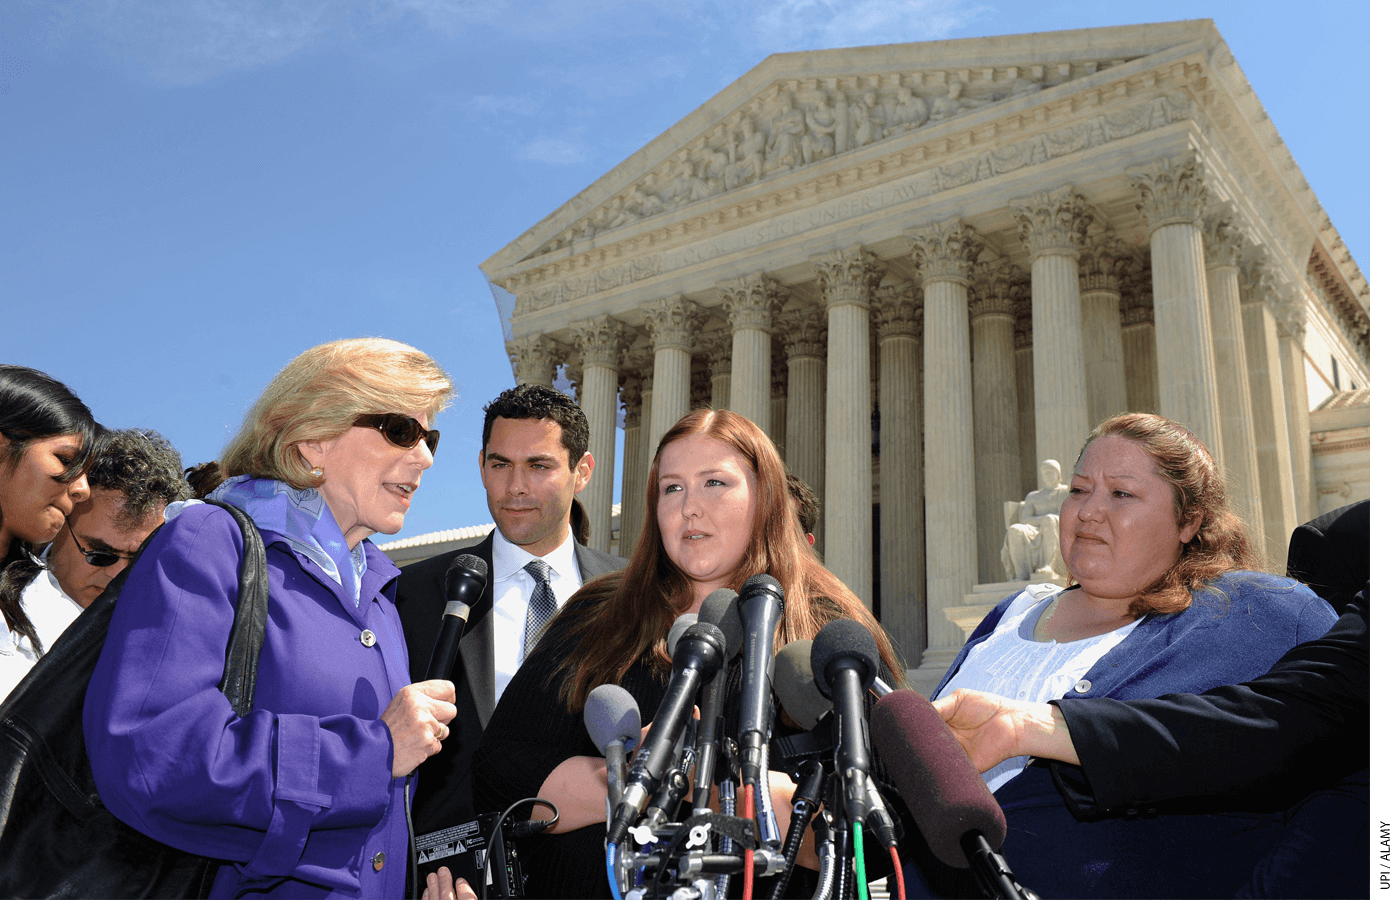 Savana Redding, age 19, speaks to the media in front of the Supreme Court. The court ruled school officials had violated her rights with a search but were protected by qualified immunity.